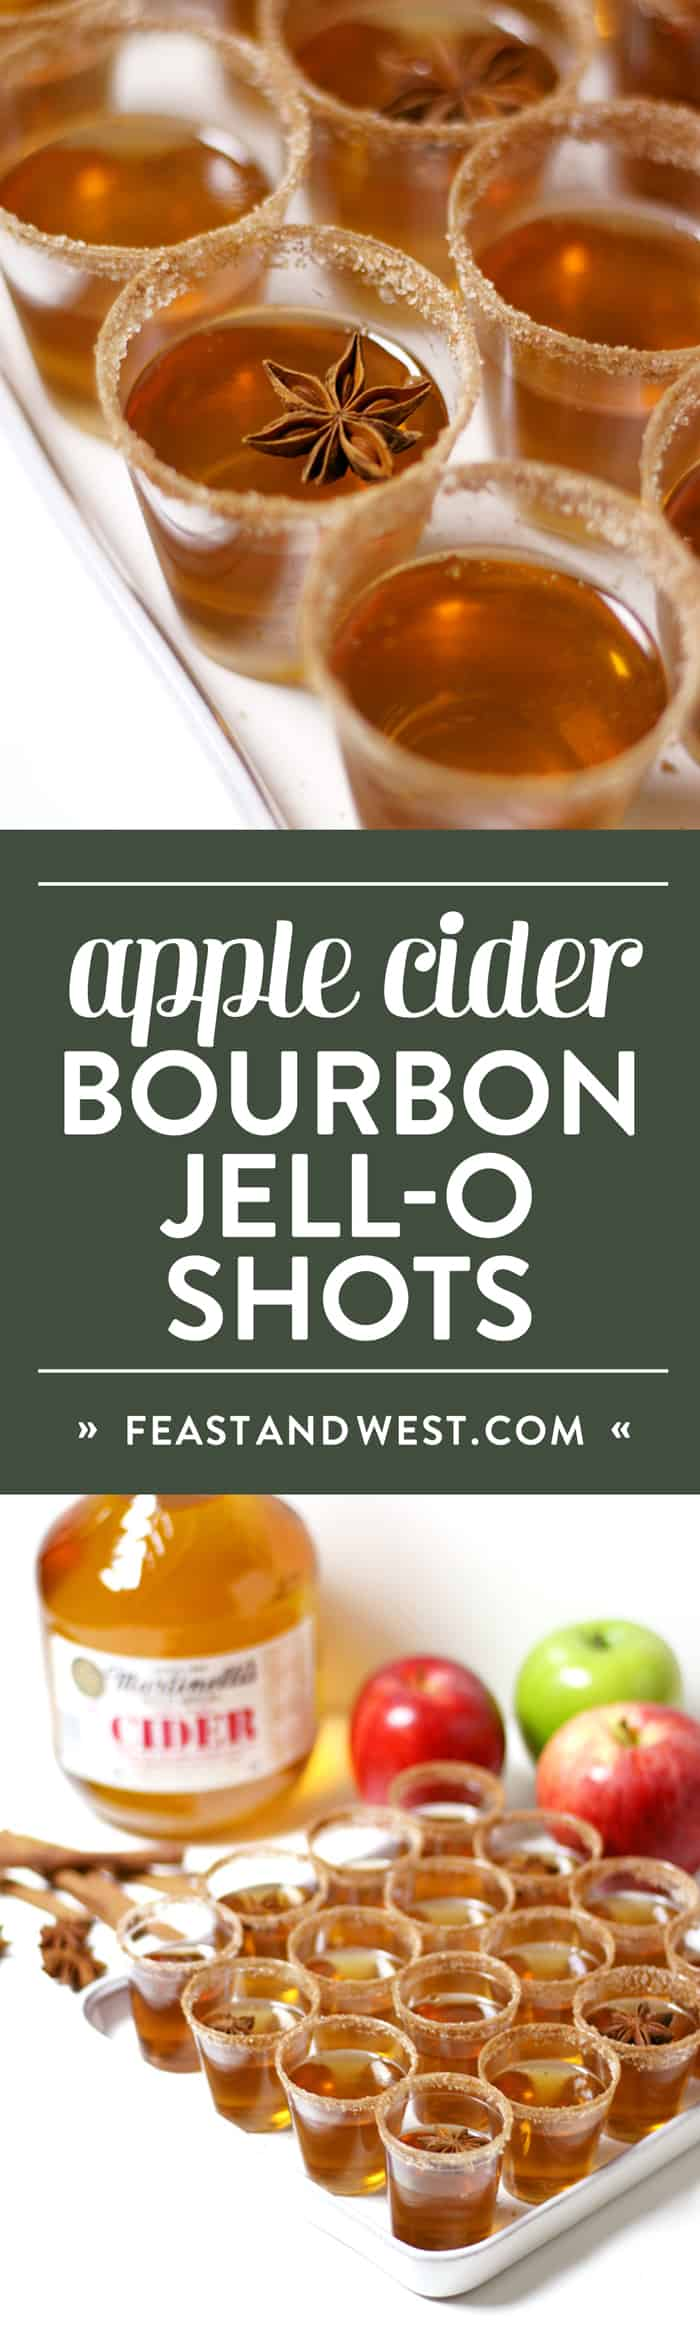 Apple Cider = Jell-O Shots are not your average Jell-O shot, and they will be the star of your holiday party. Infuse bourbon with cinnamon and combine with Martinelli's Apple Cider, sugar and gelatin to make this festive holiday treat that's fun for the whole (21+!) family. (via feastandwest.com)